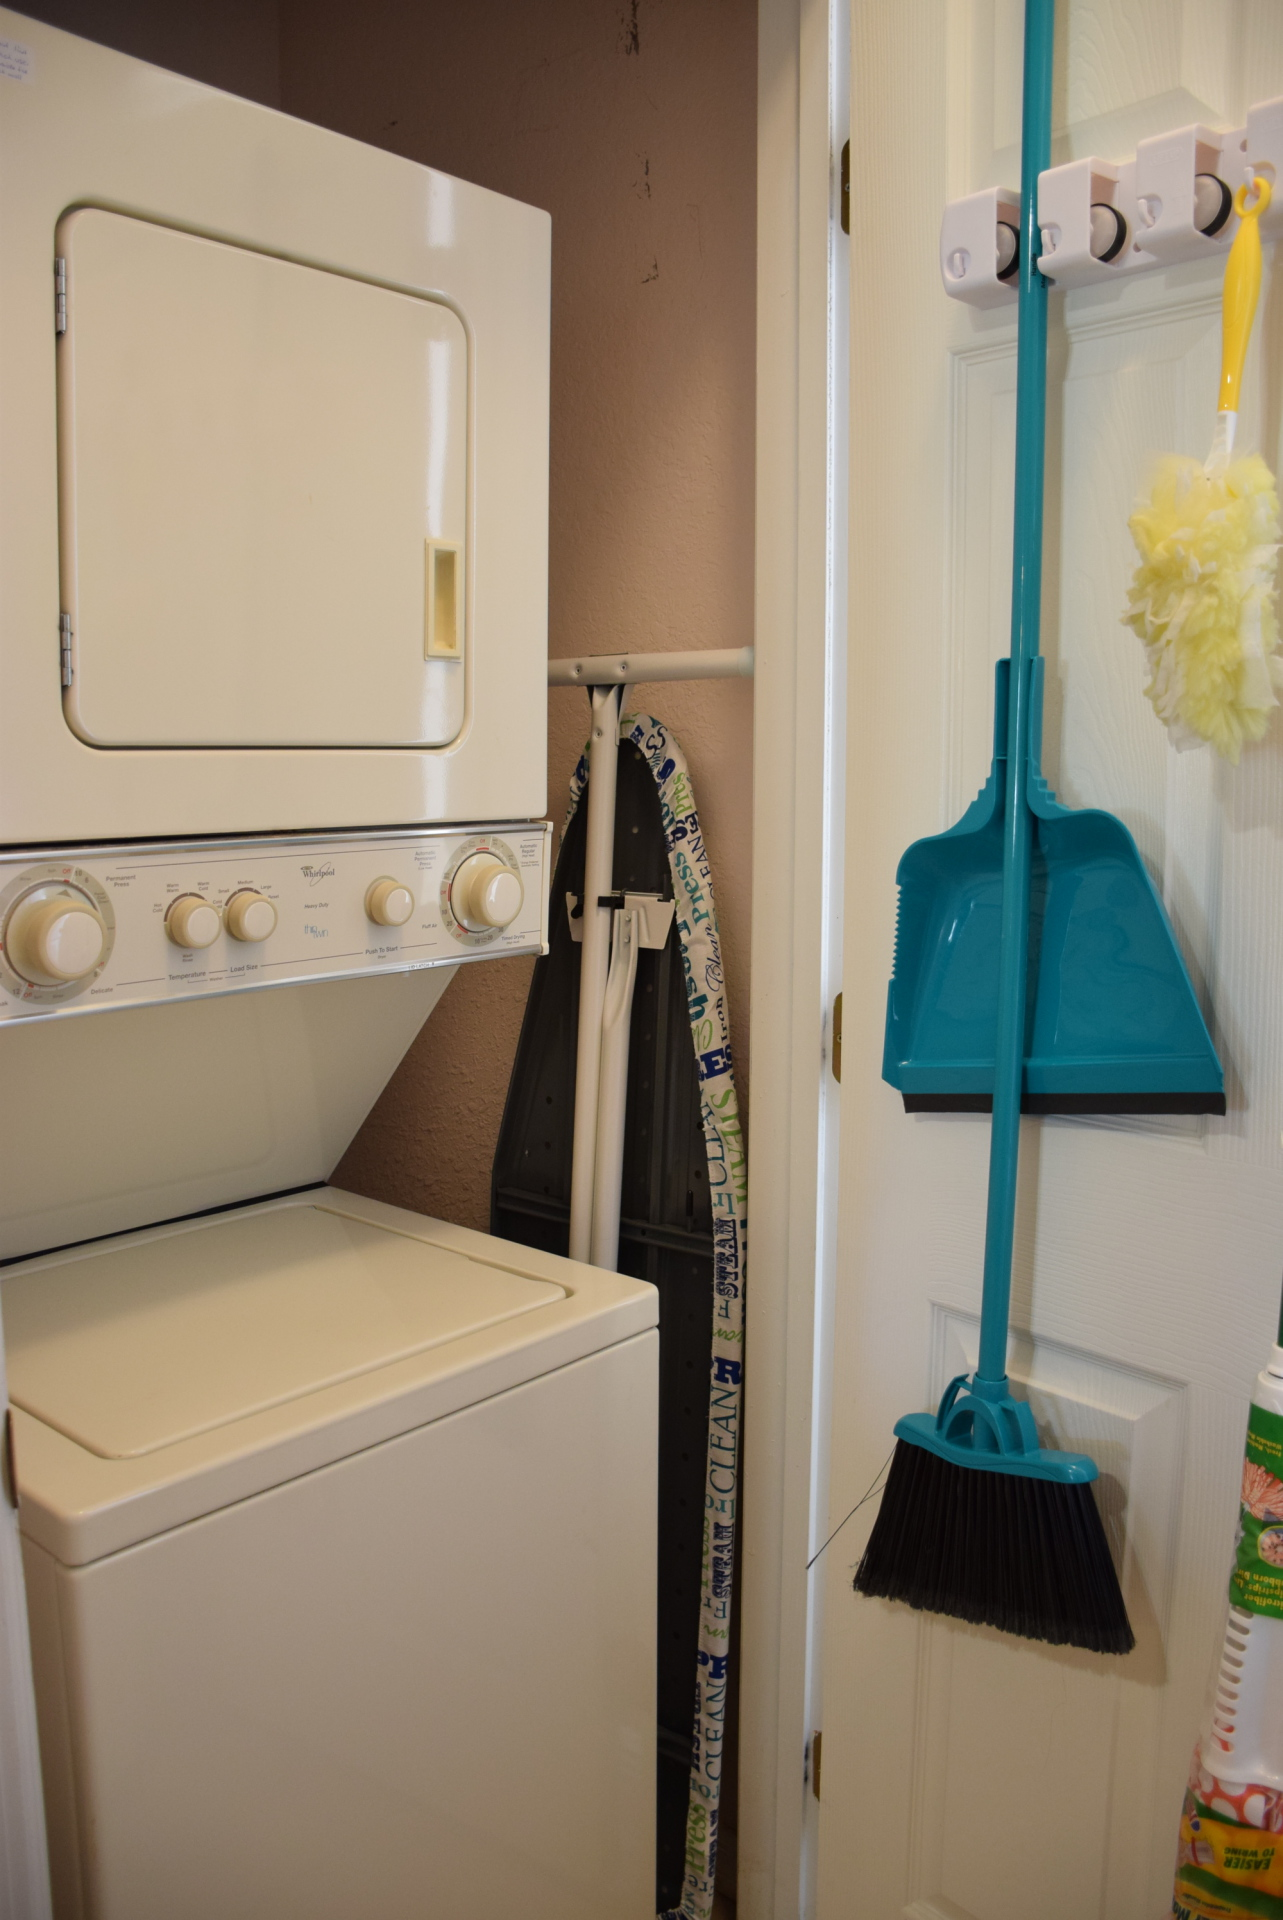 Stackable Washer/Dryer in a kitchen closet